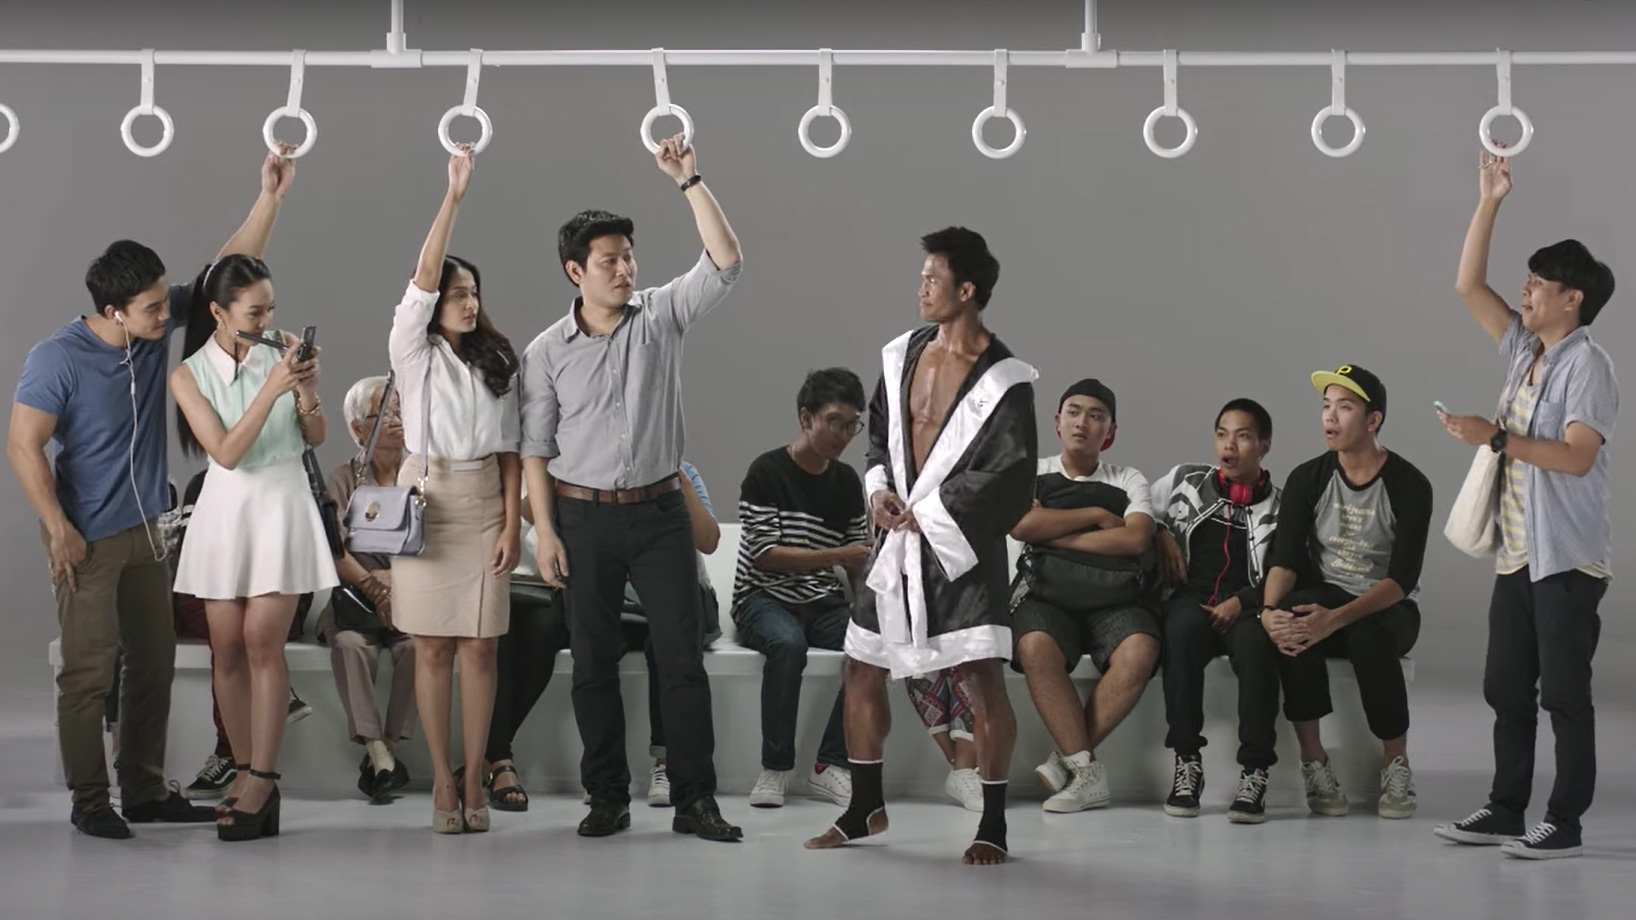 VIDEO | Buakaw em campanha contra abuso sexual